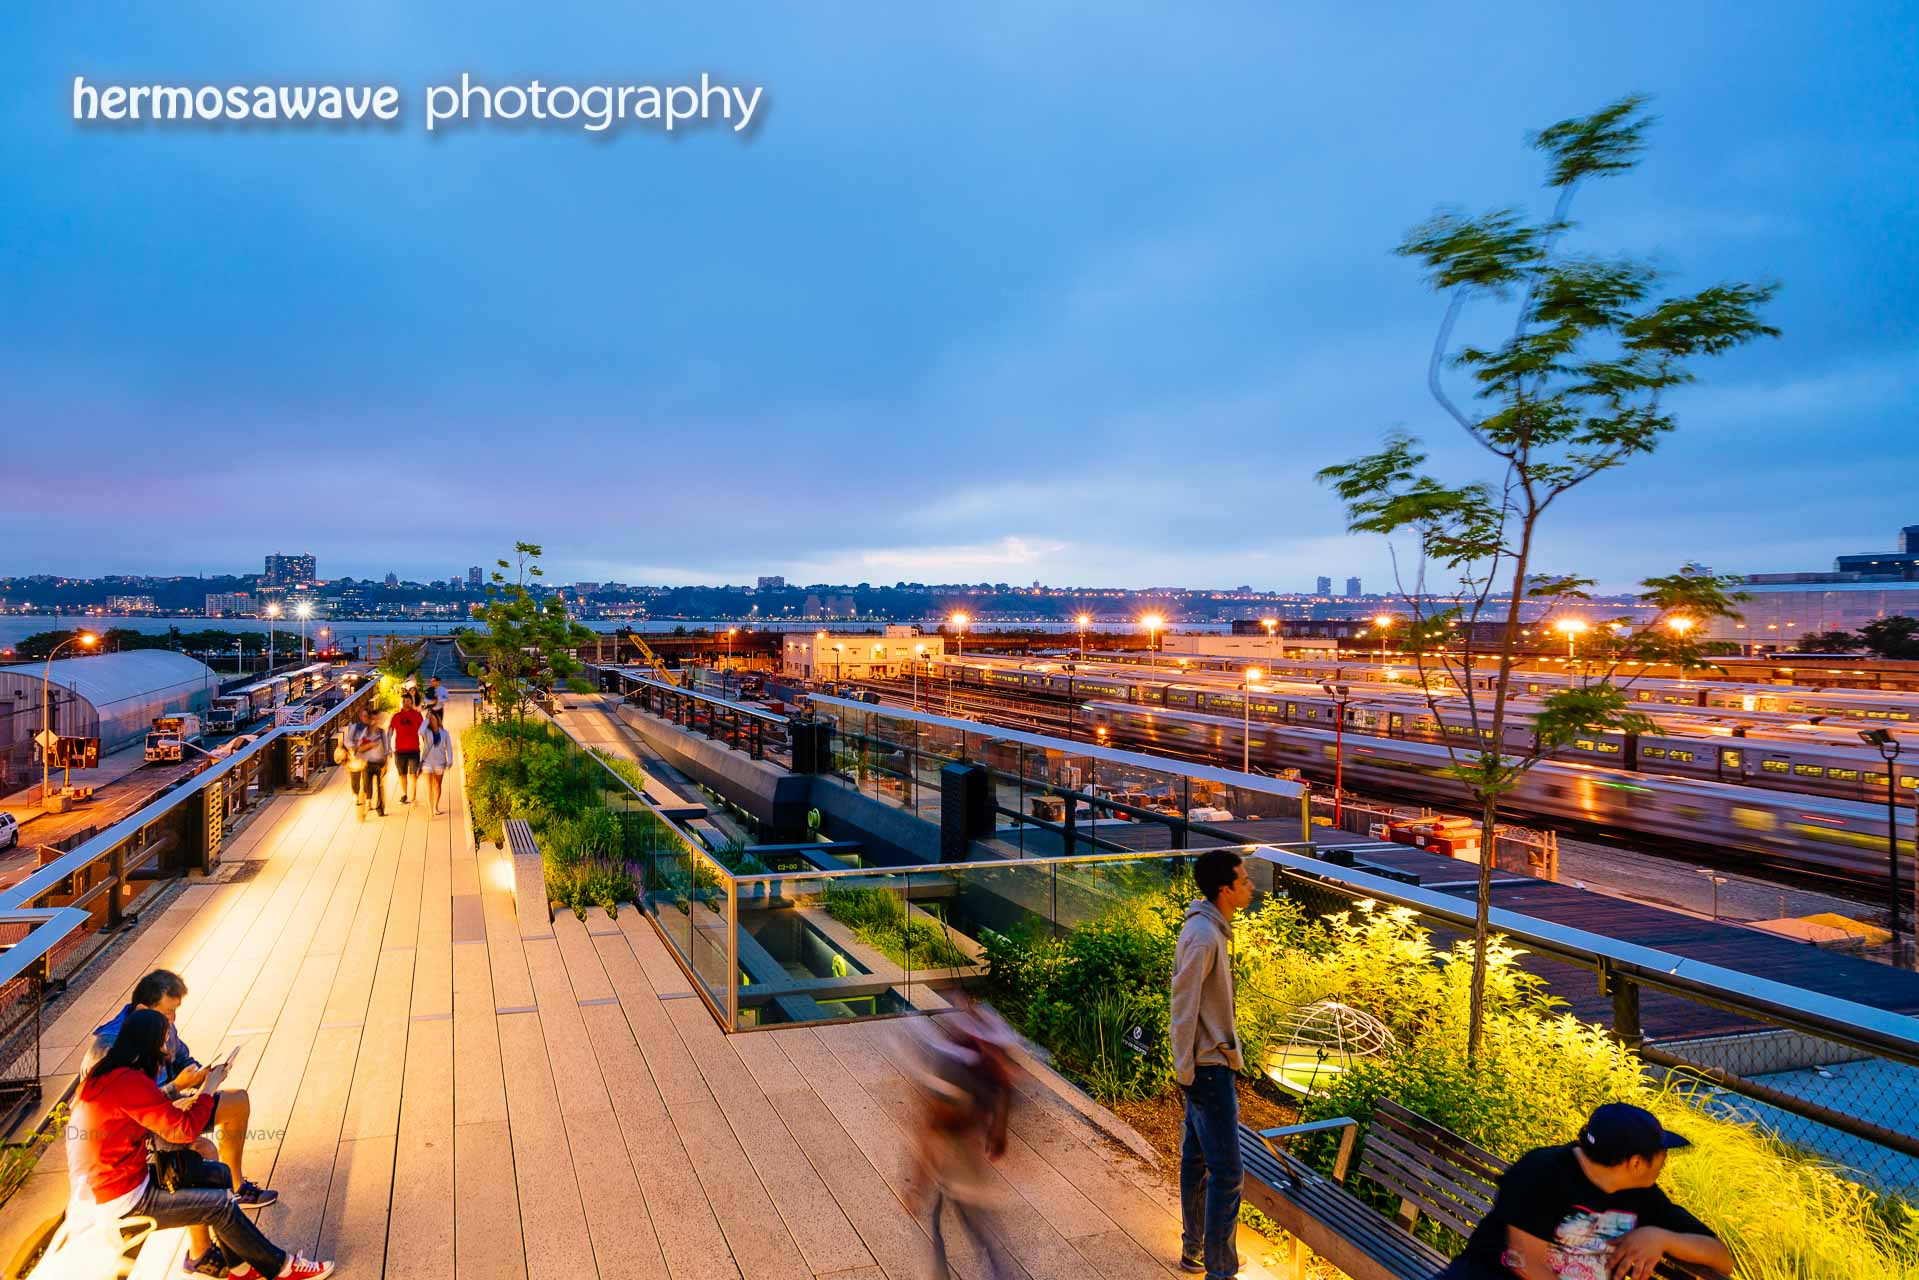 Evening on the High Line